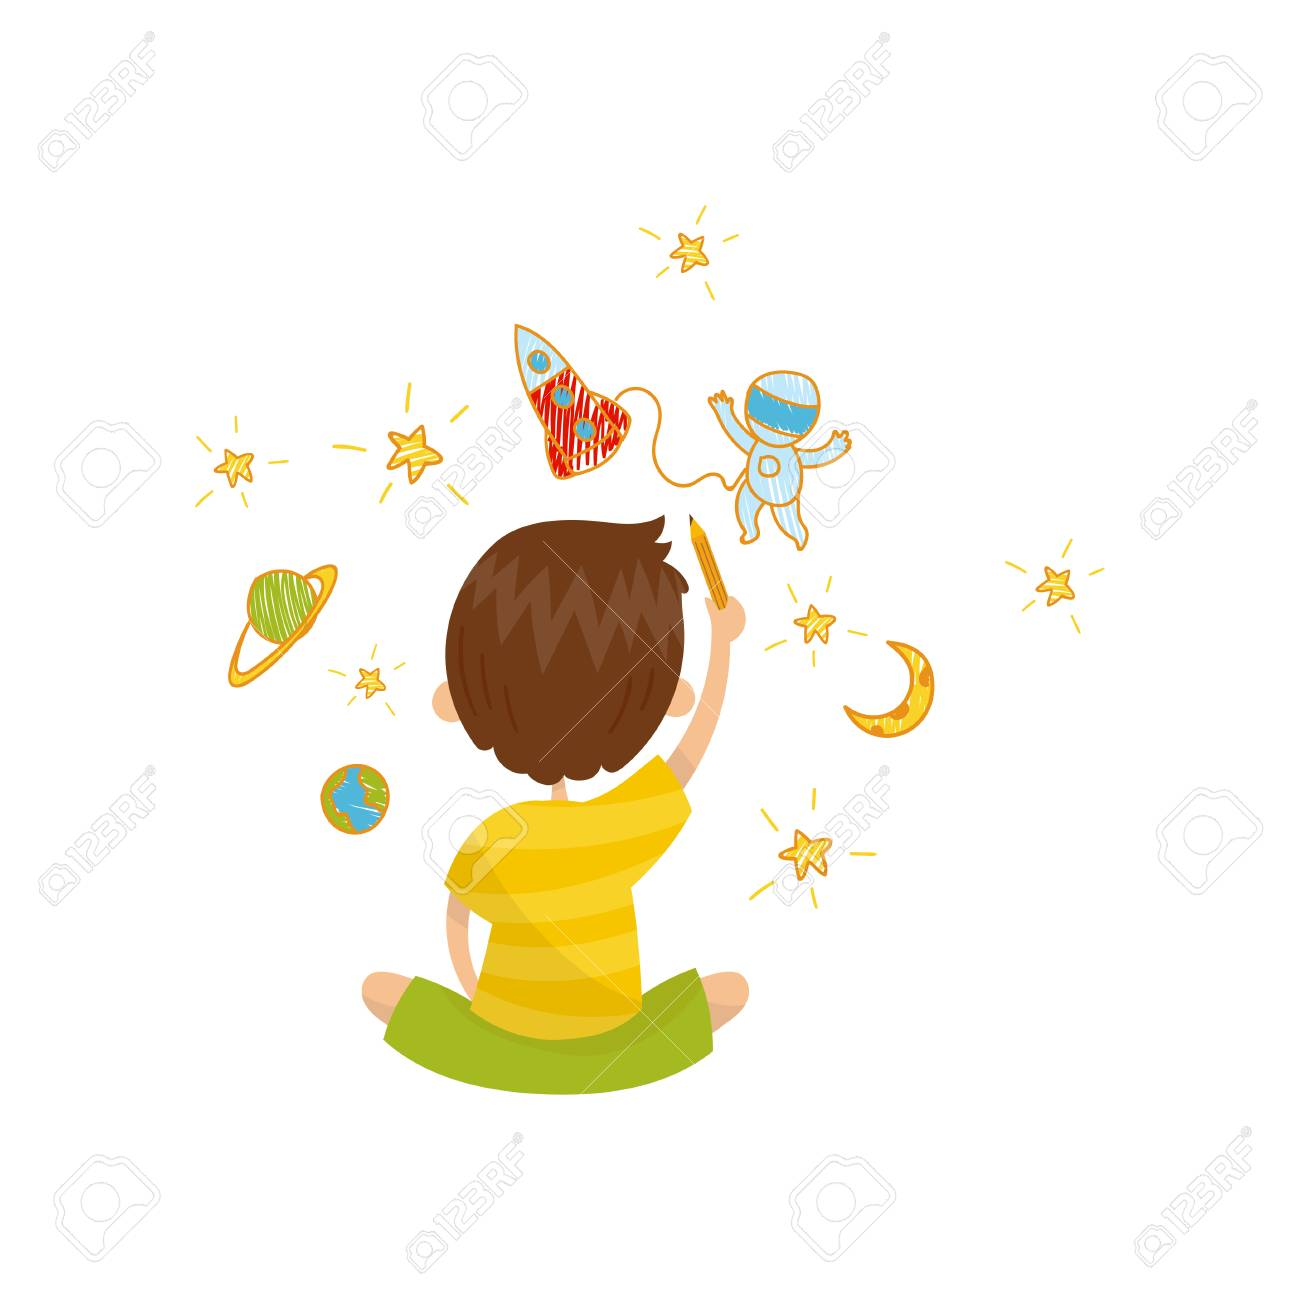 Cute little boy sitting on the floor and drawing with color pencils on the wall, back view, young artist, kids activity routine vector illustration. - 97888641